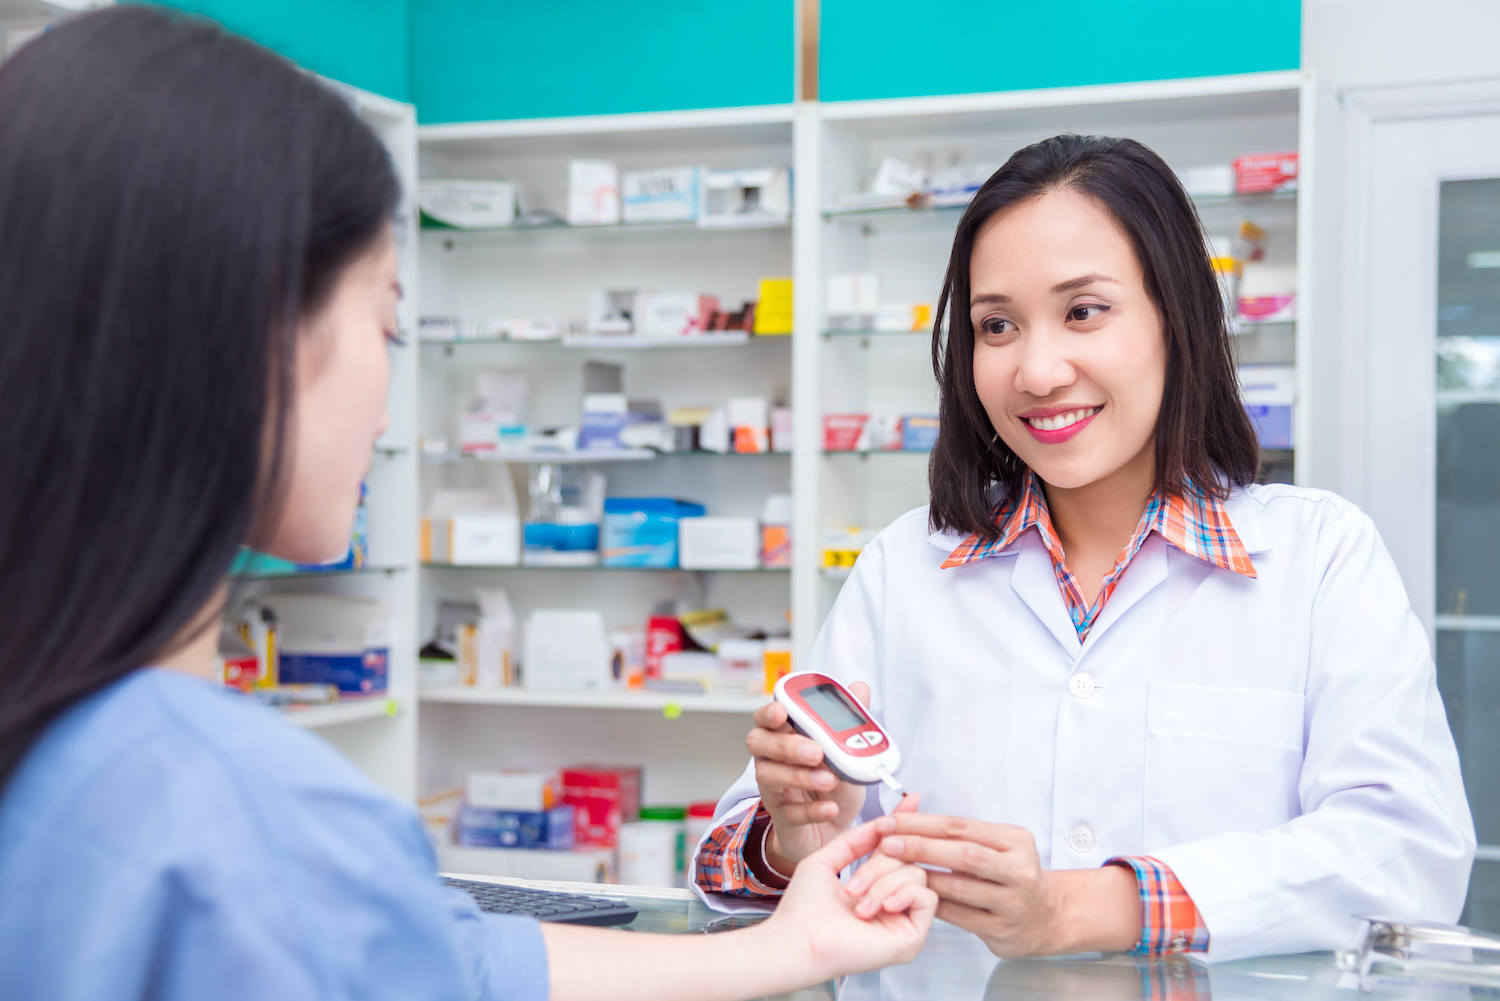 Our pharmacists are all trained in checking blood sugar readings. Whether you monitor your own sugar or not, our pharmacists would be happy to check your sugar for you!